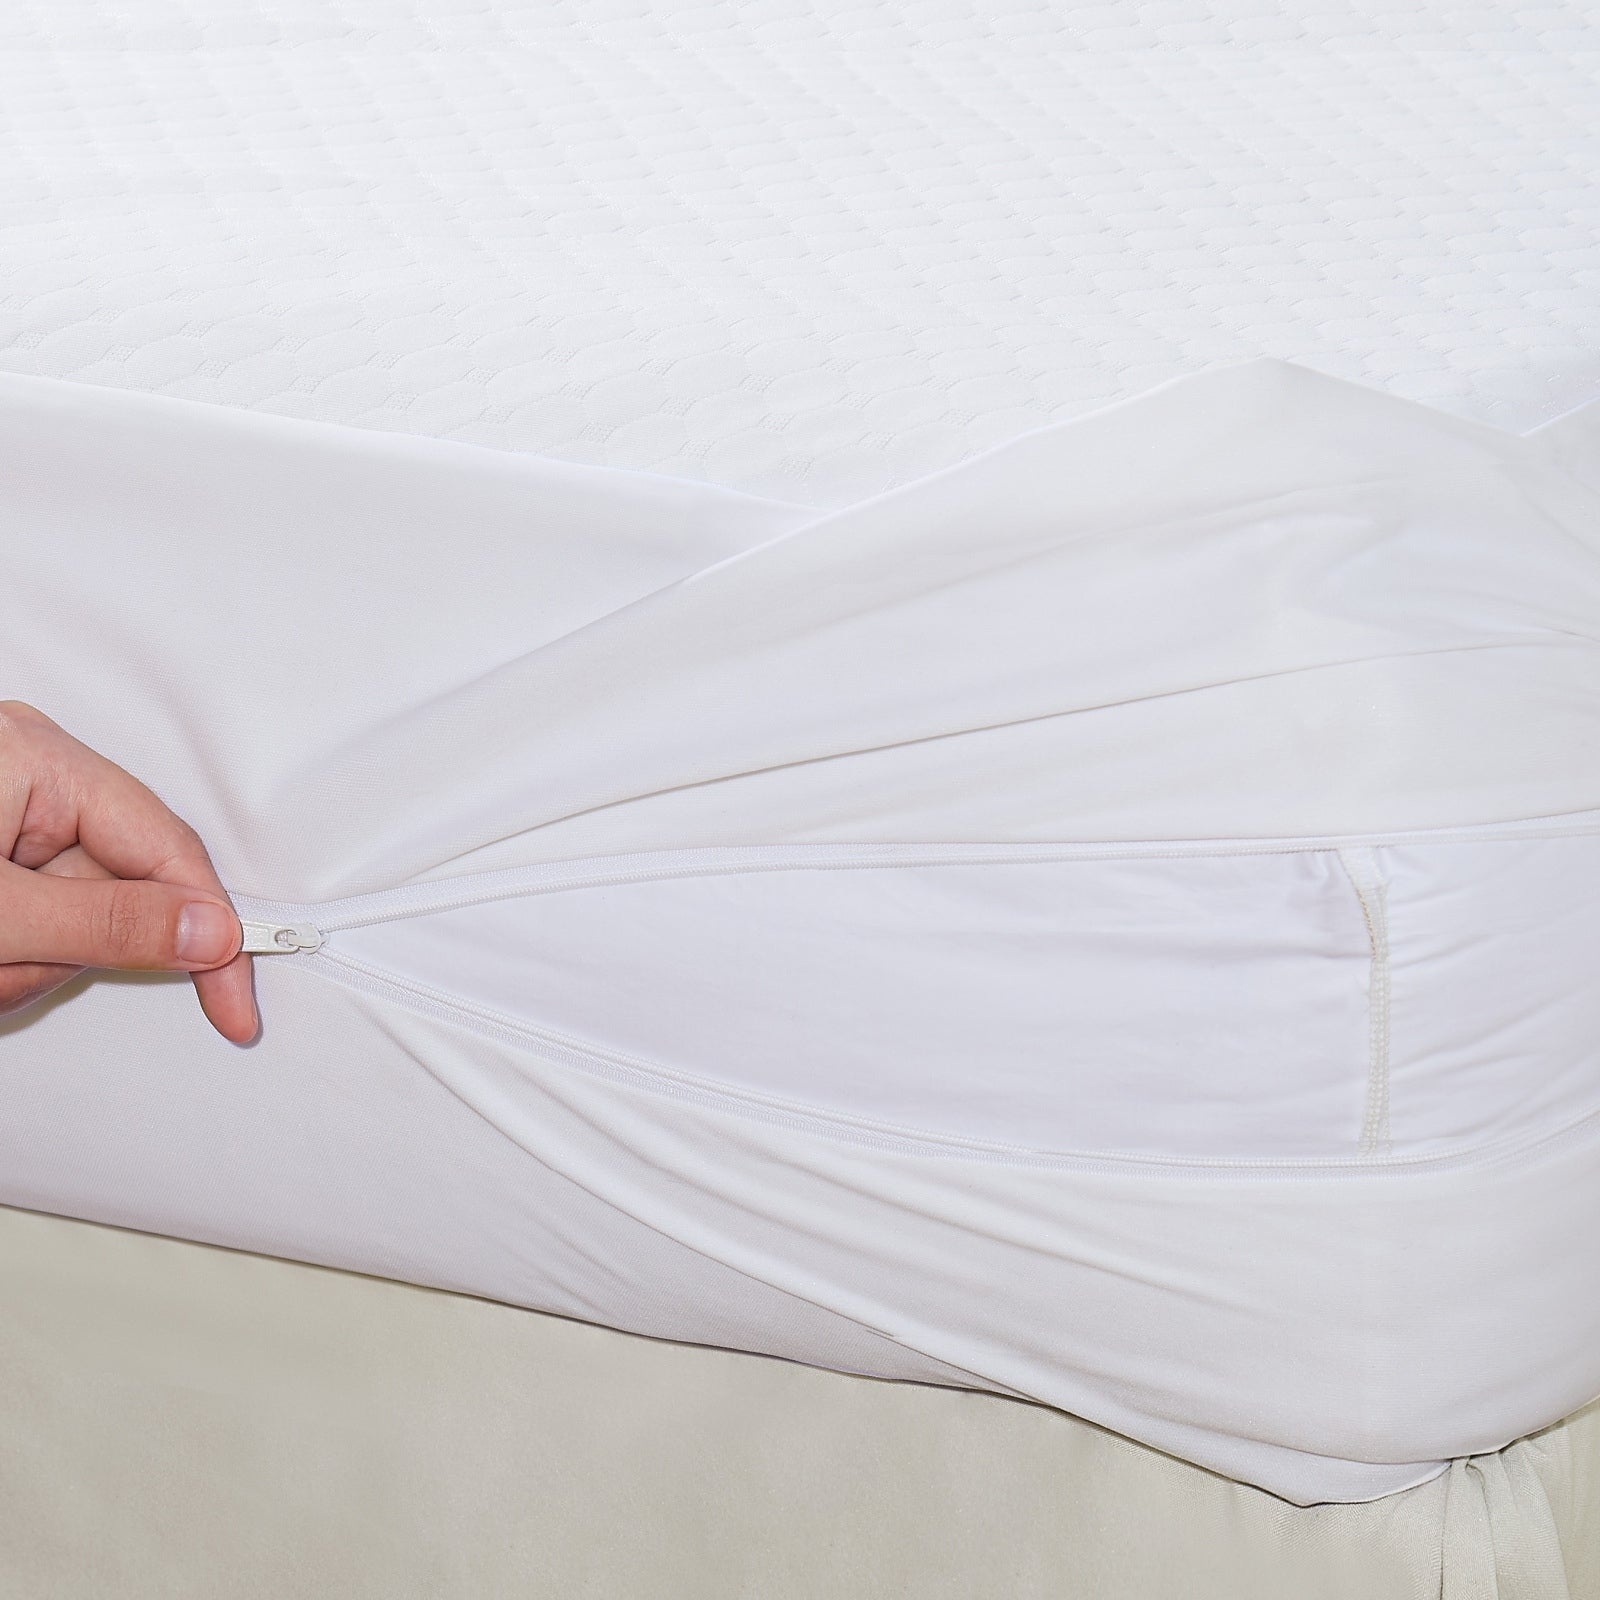 All-in-one mattress protector with Bed Bug Blocker Twin FREE SHIPPING